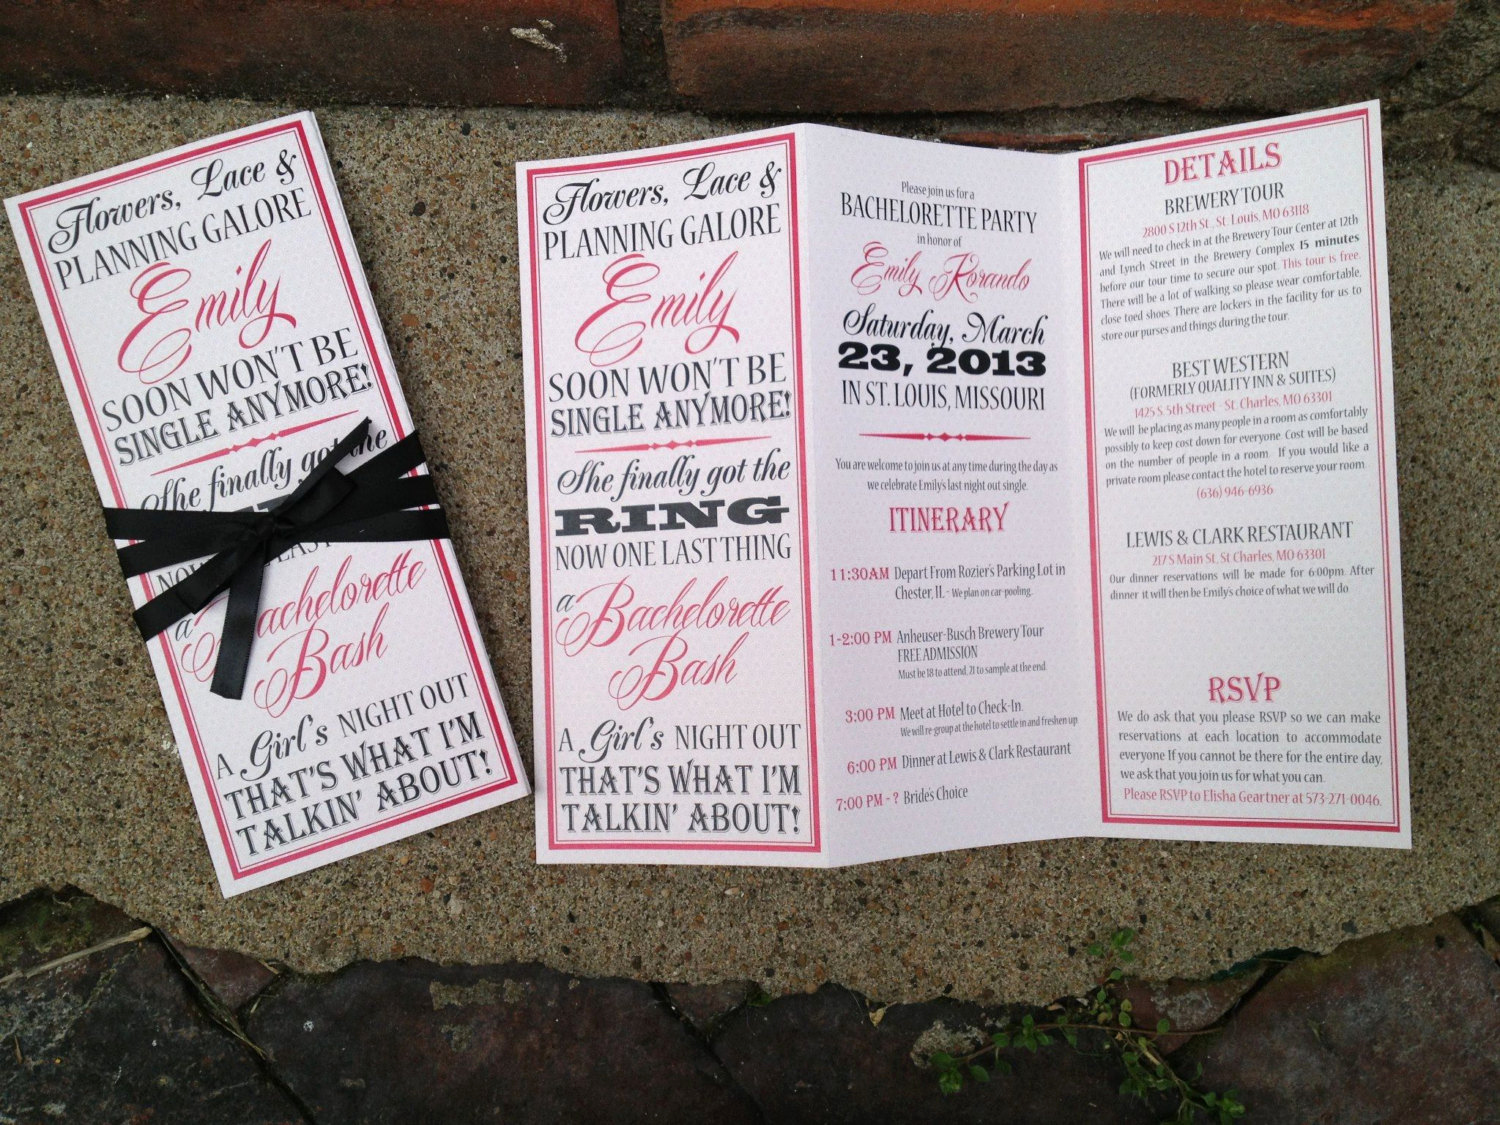 Bachelorette Party Itinerary Template Fresh Bachelorette Party Invite Trifolded Itinerary